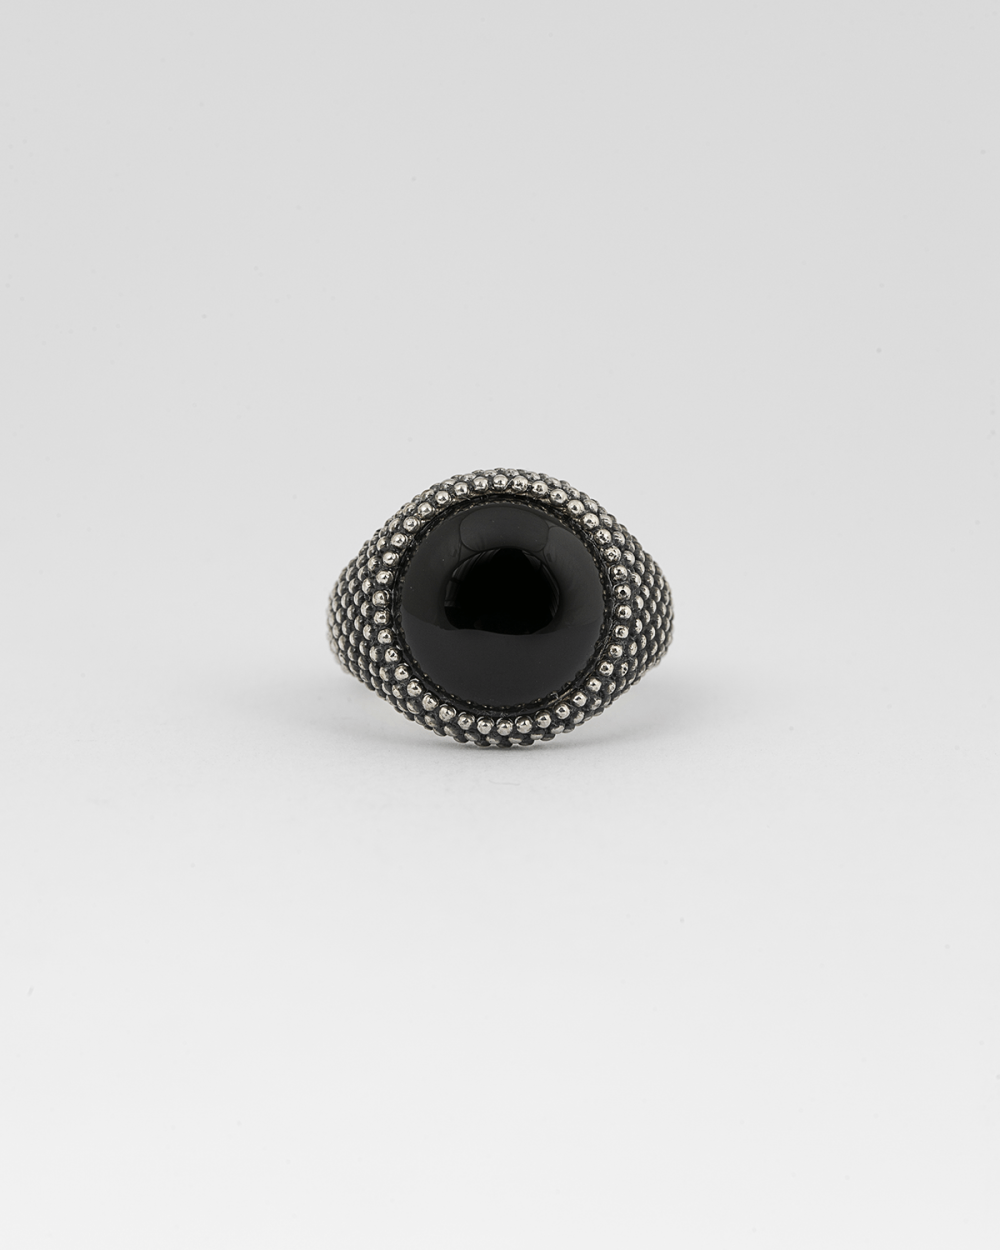 dotted round onyx signet ring